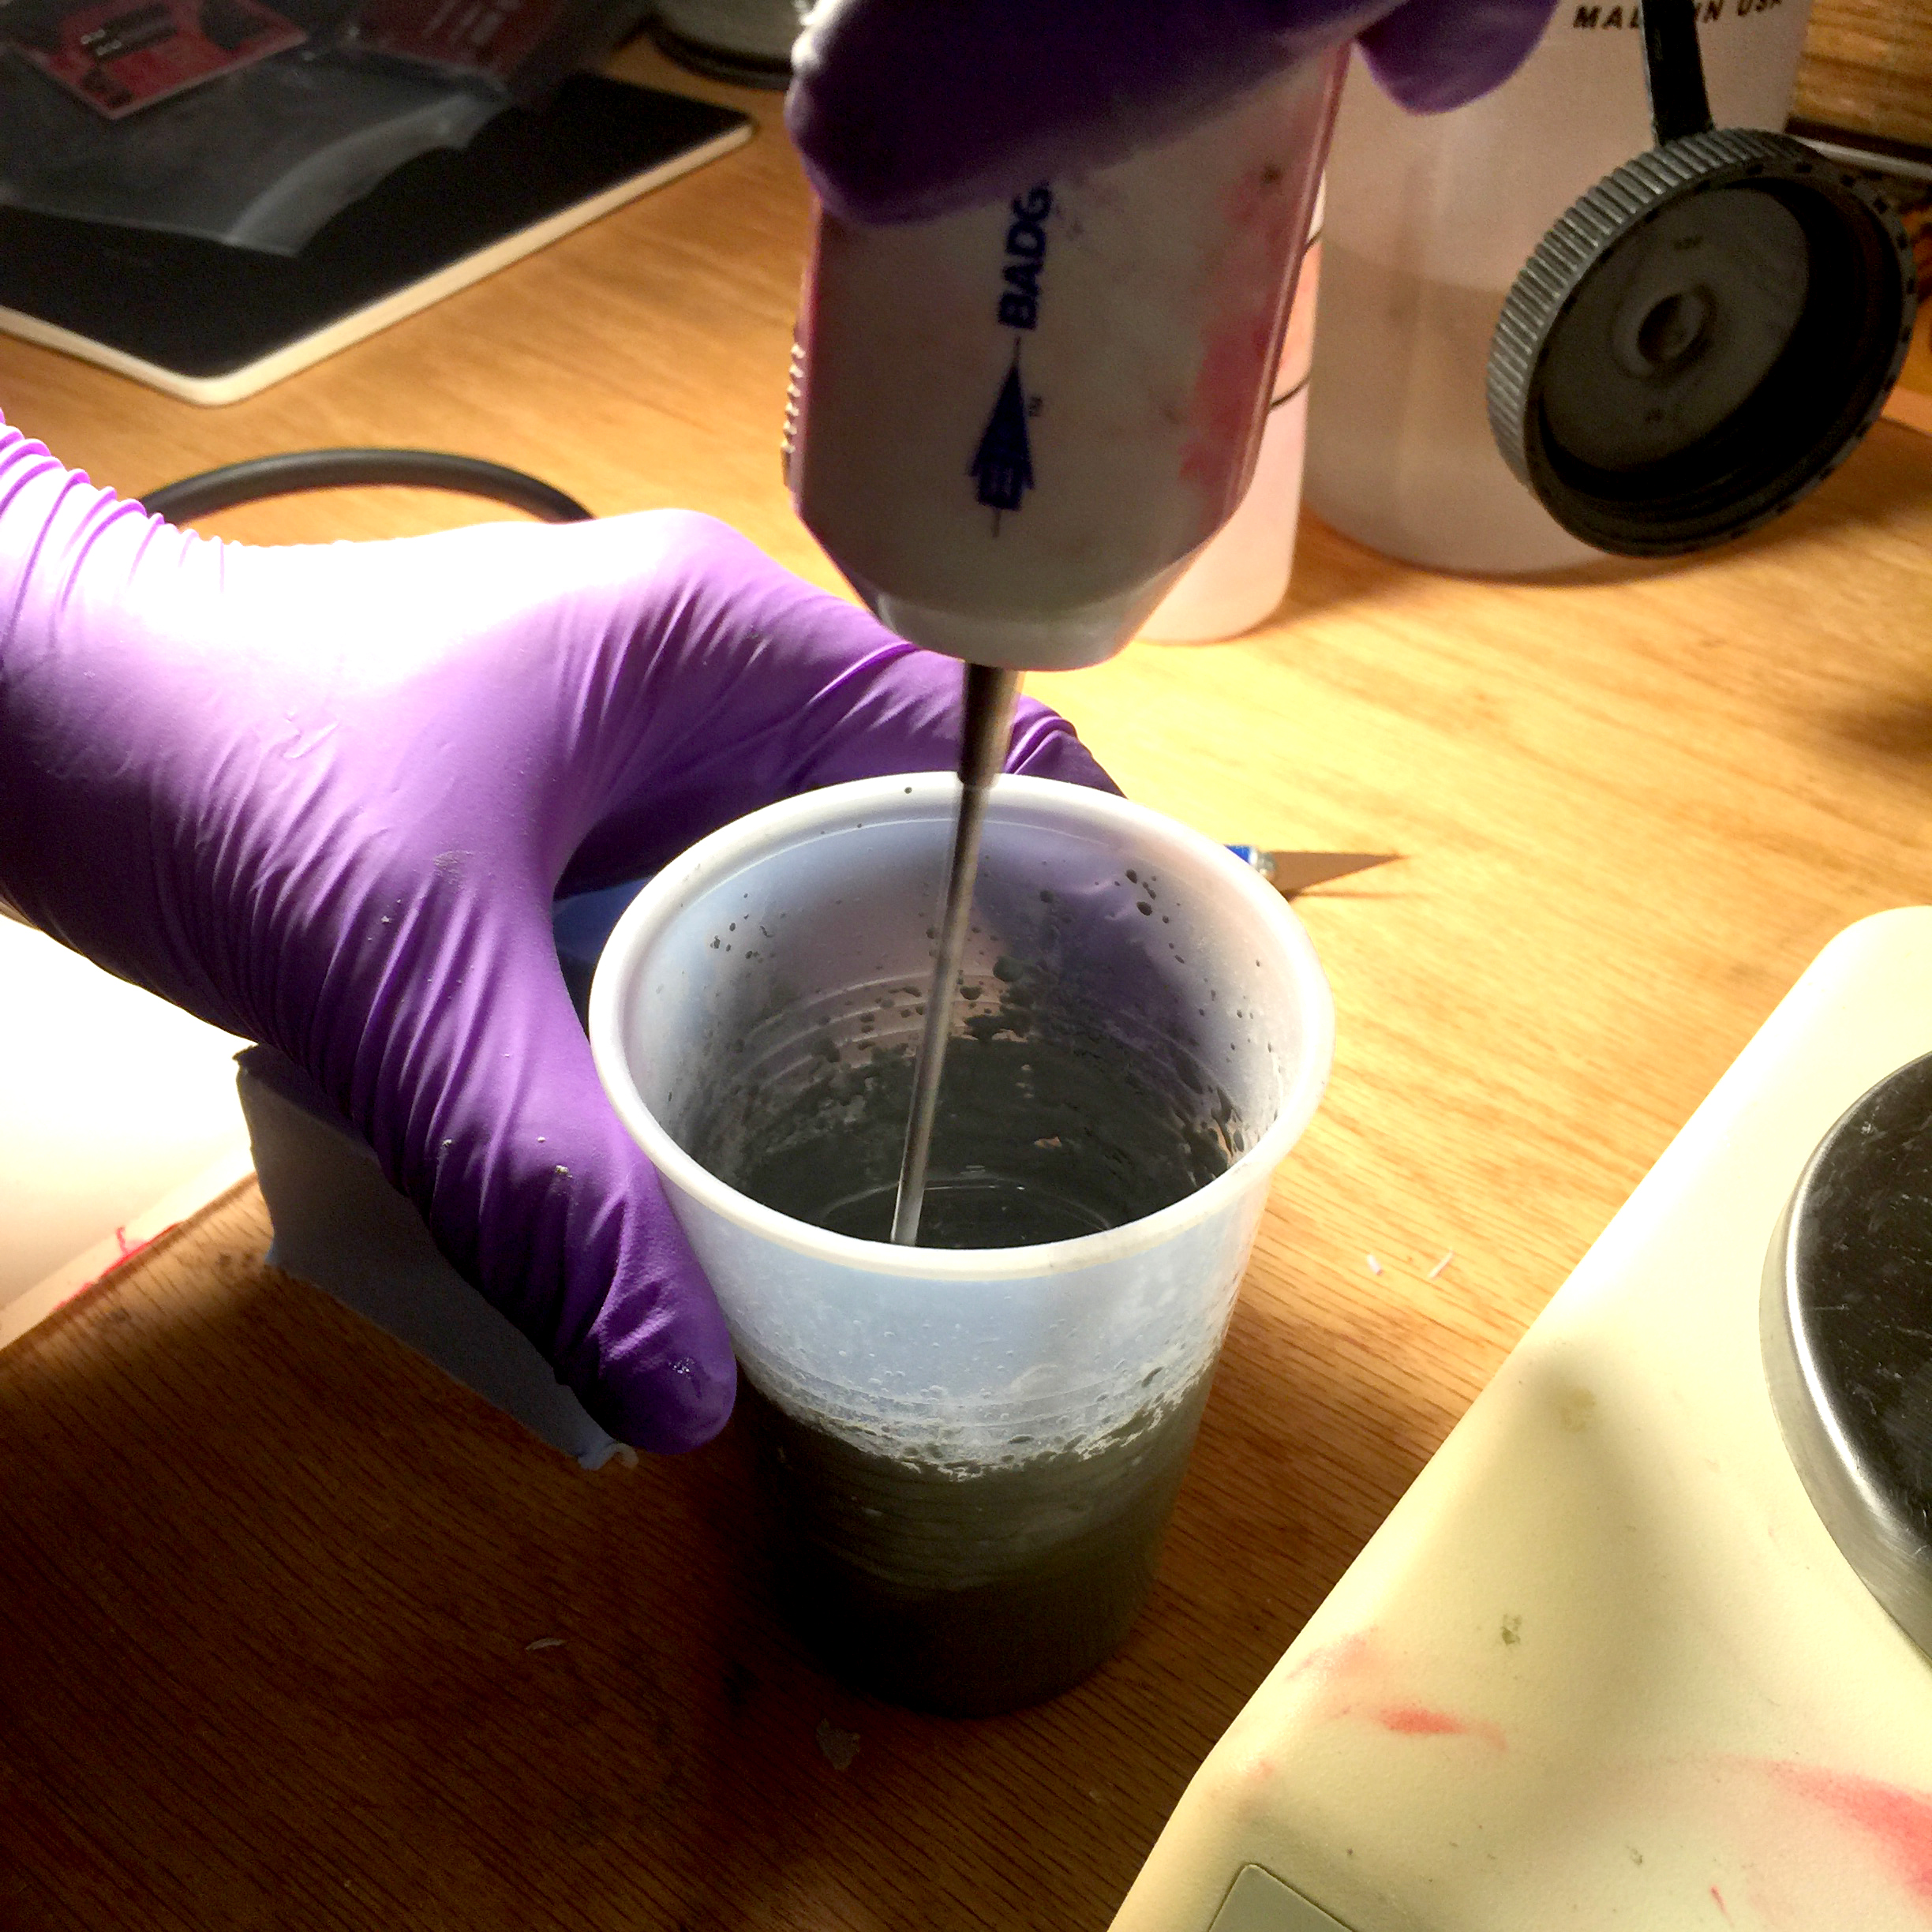 Mixing the powdered metal and resin together before pouring.